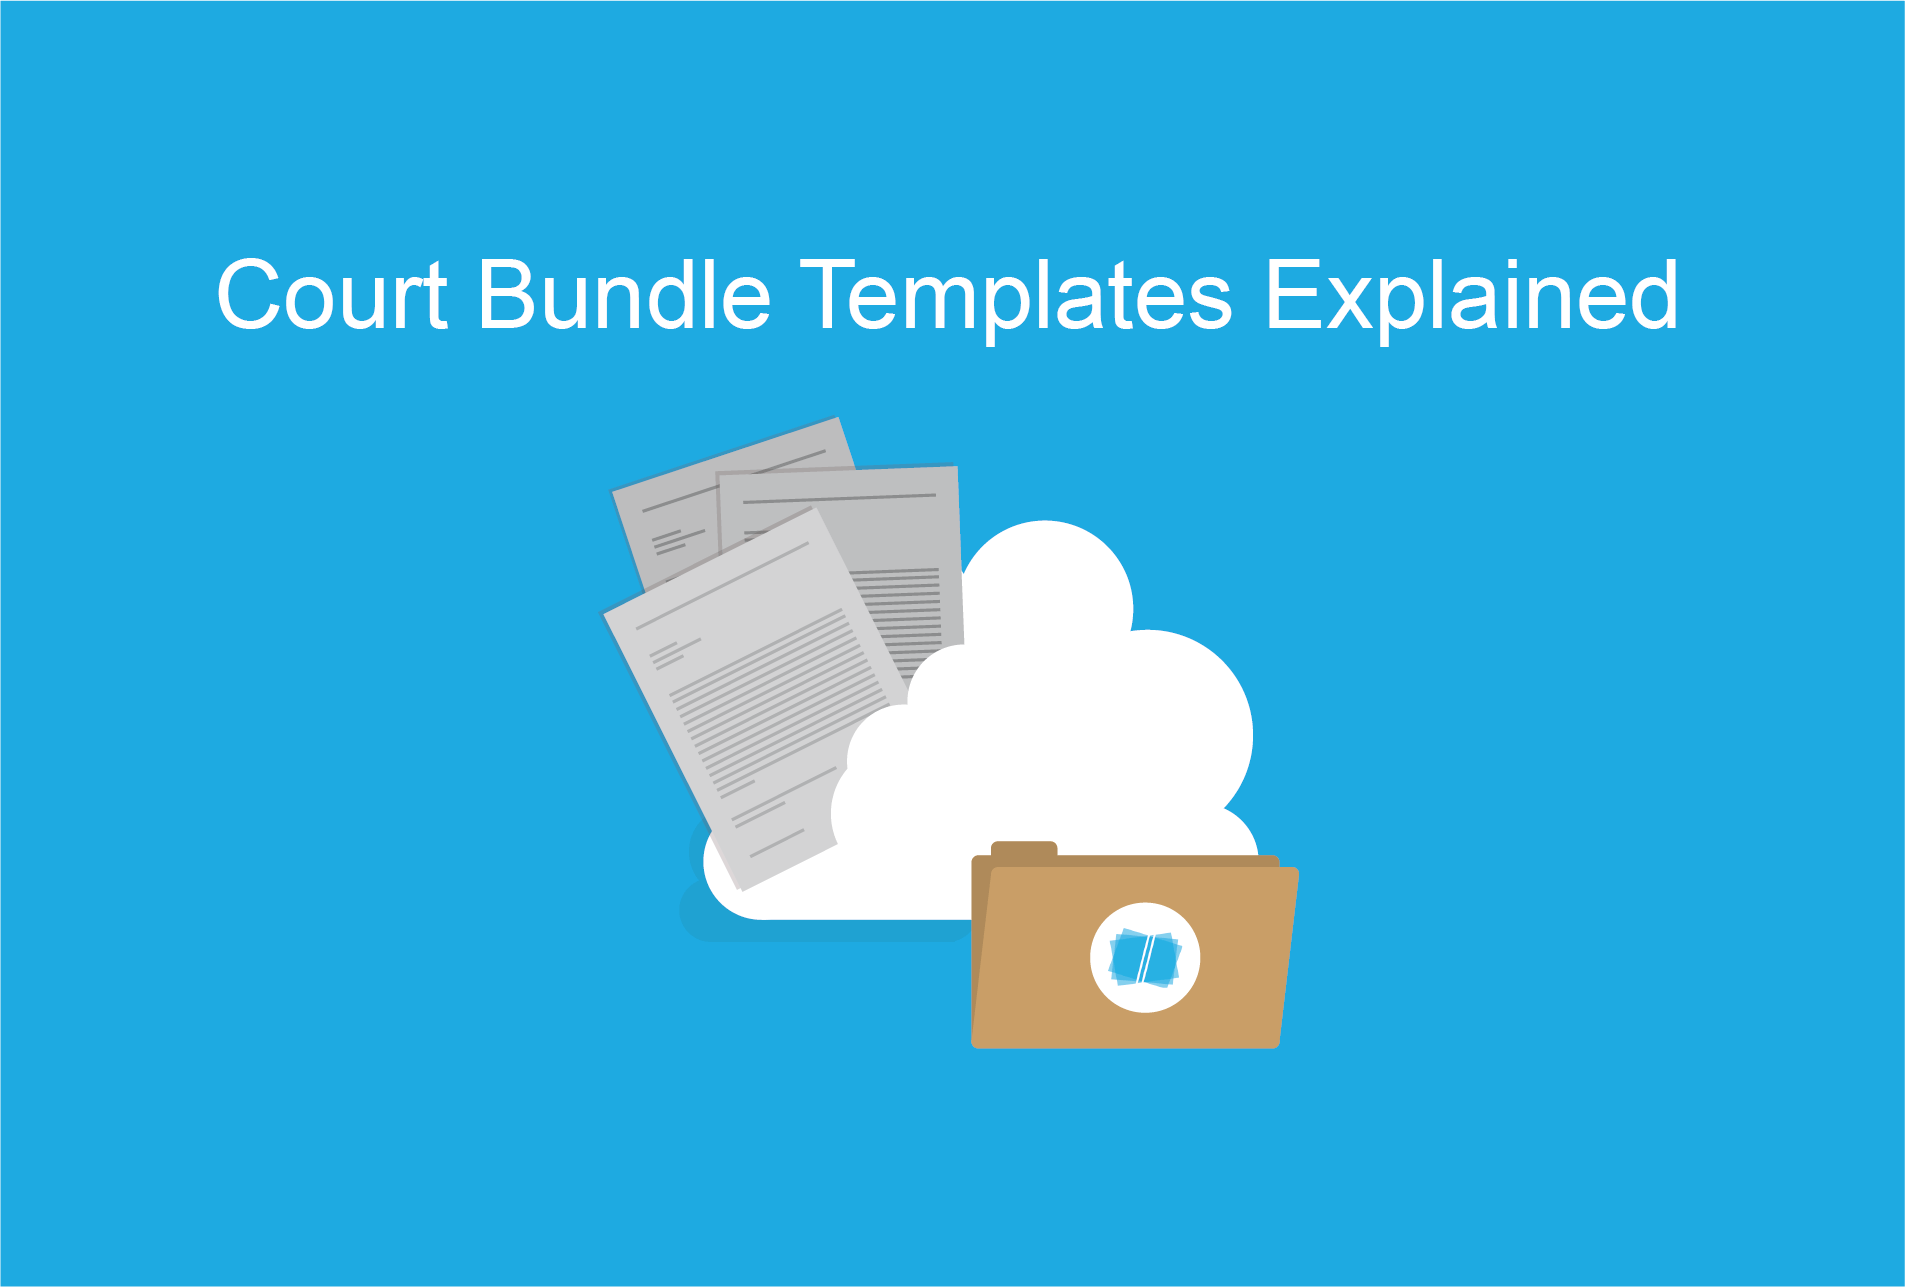 Court_Bundle_Templates_Explained.png